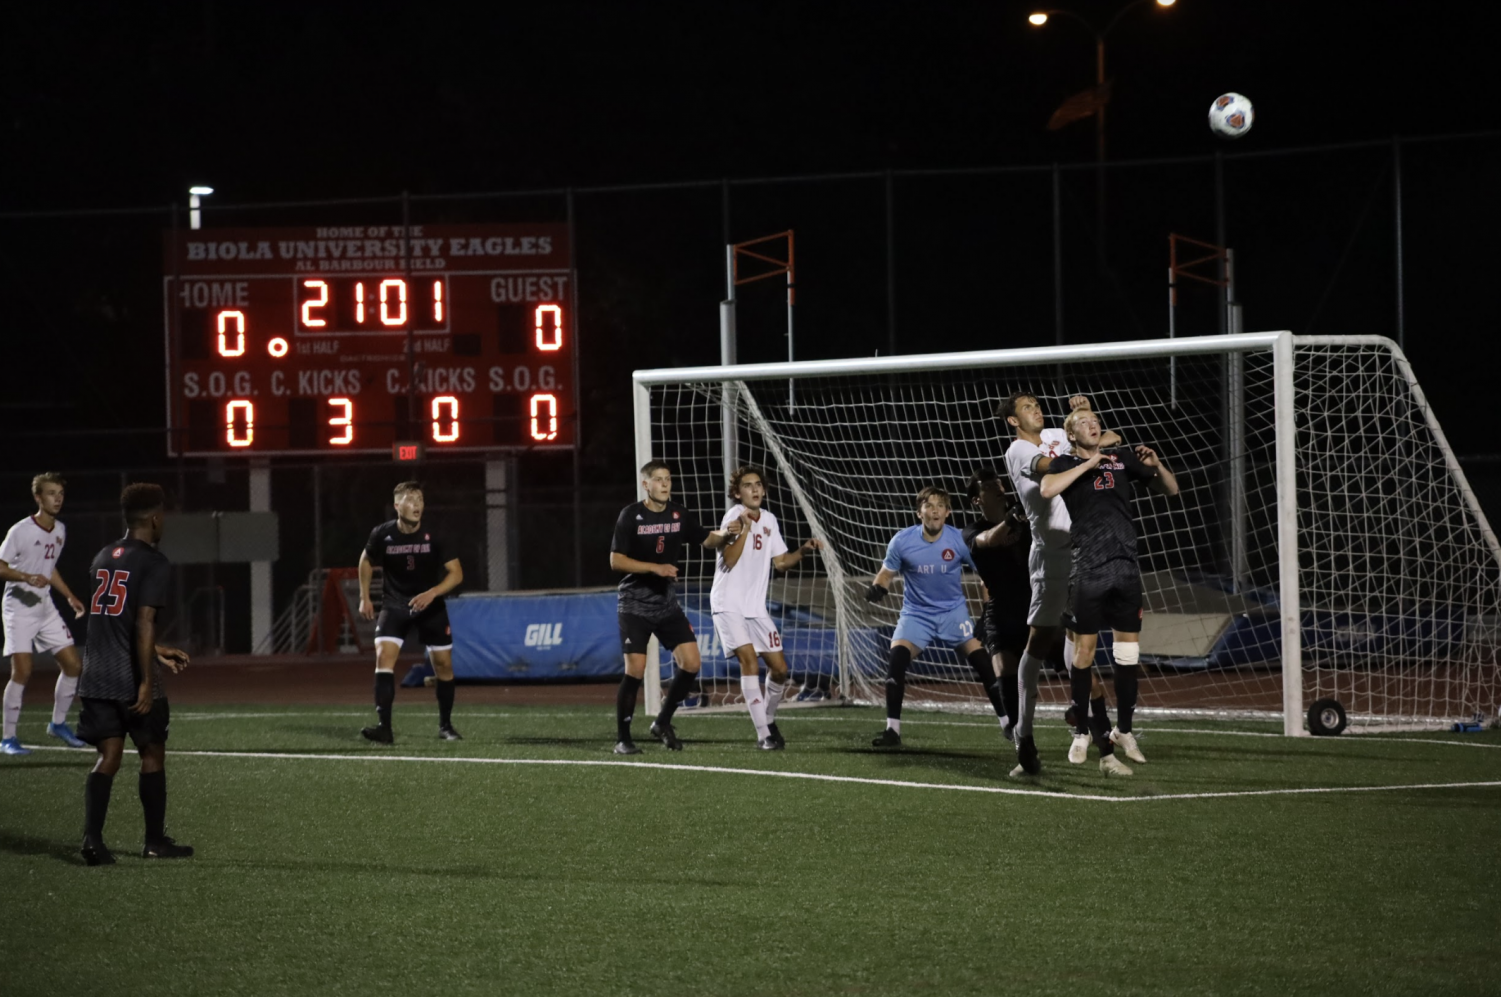 The Biola men's soccer team tries to get the ball into the net after a corner kick.